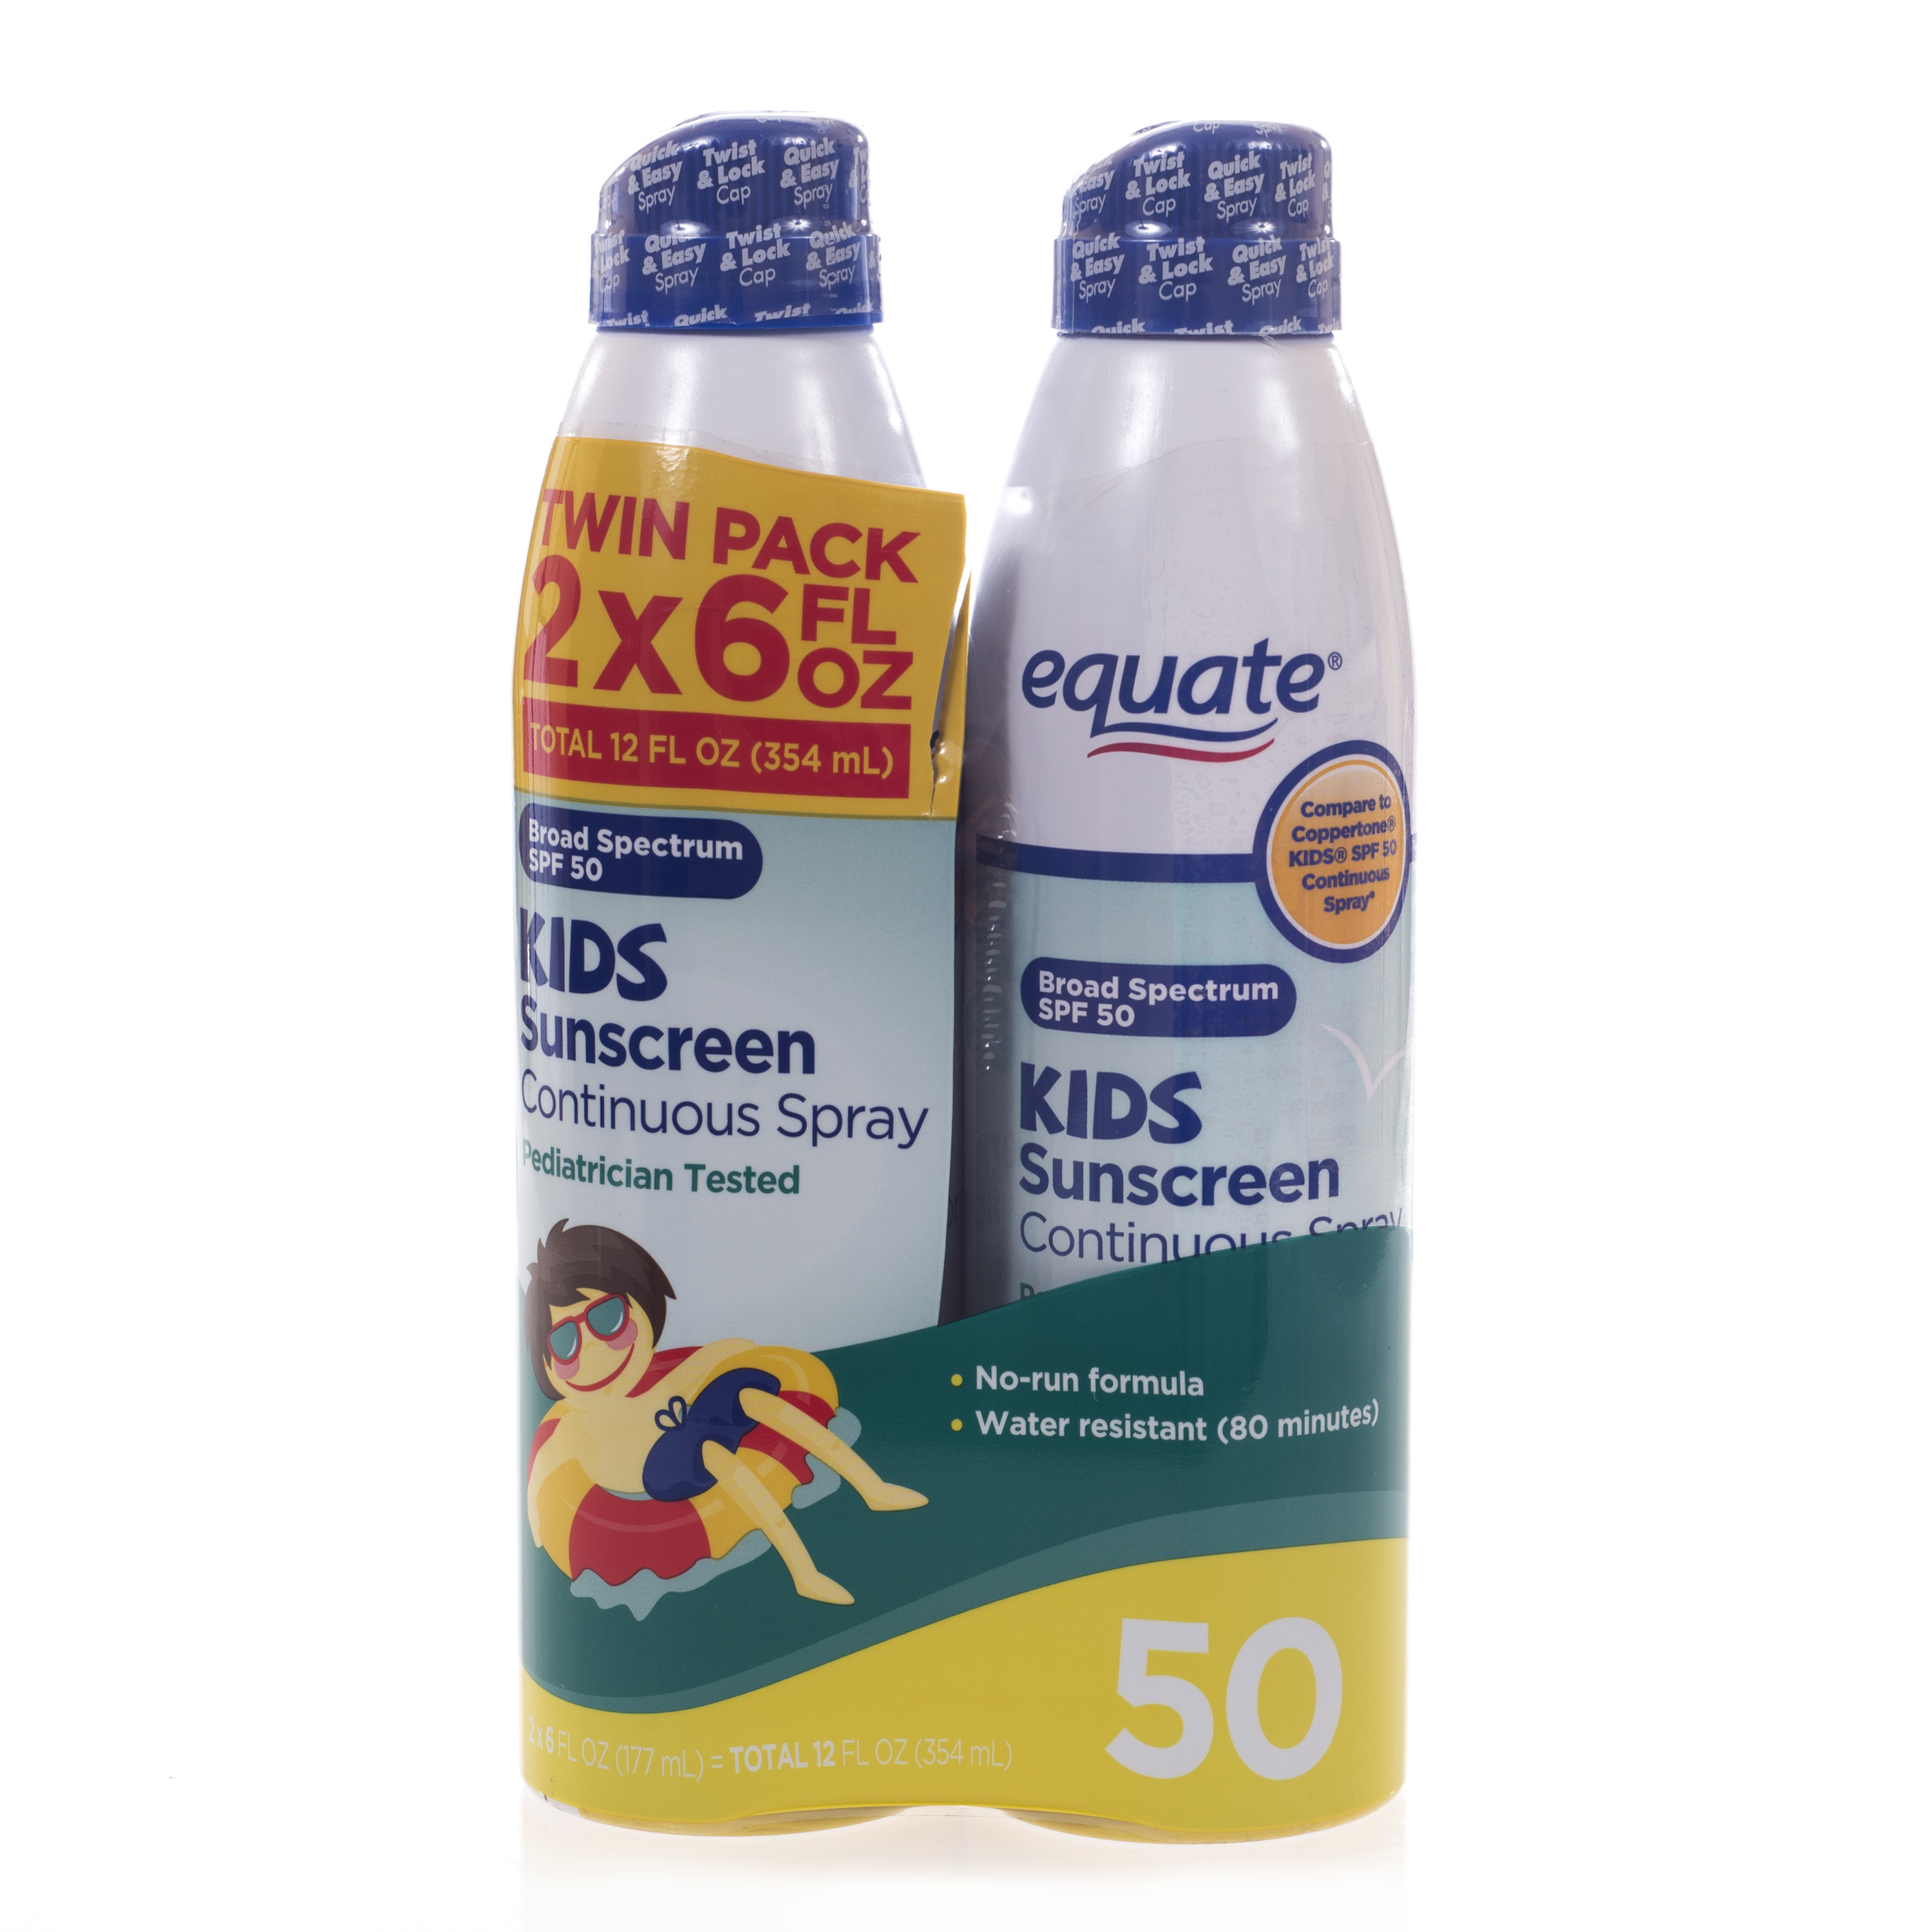 Equate Kids Continuous Spray Sunscreen, SPF 50 (Pack of 2)